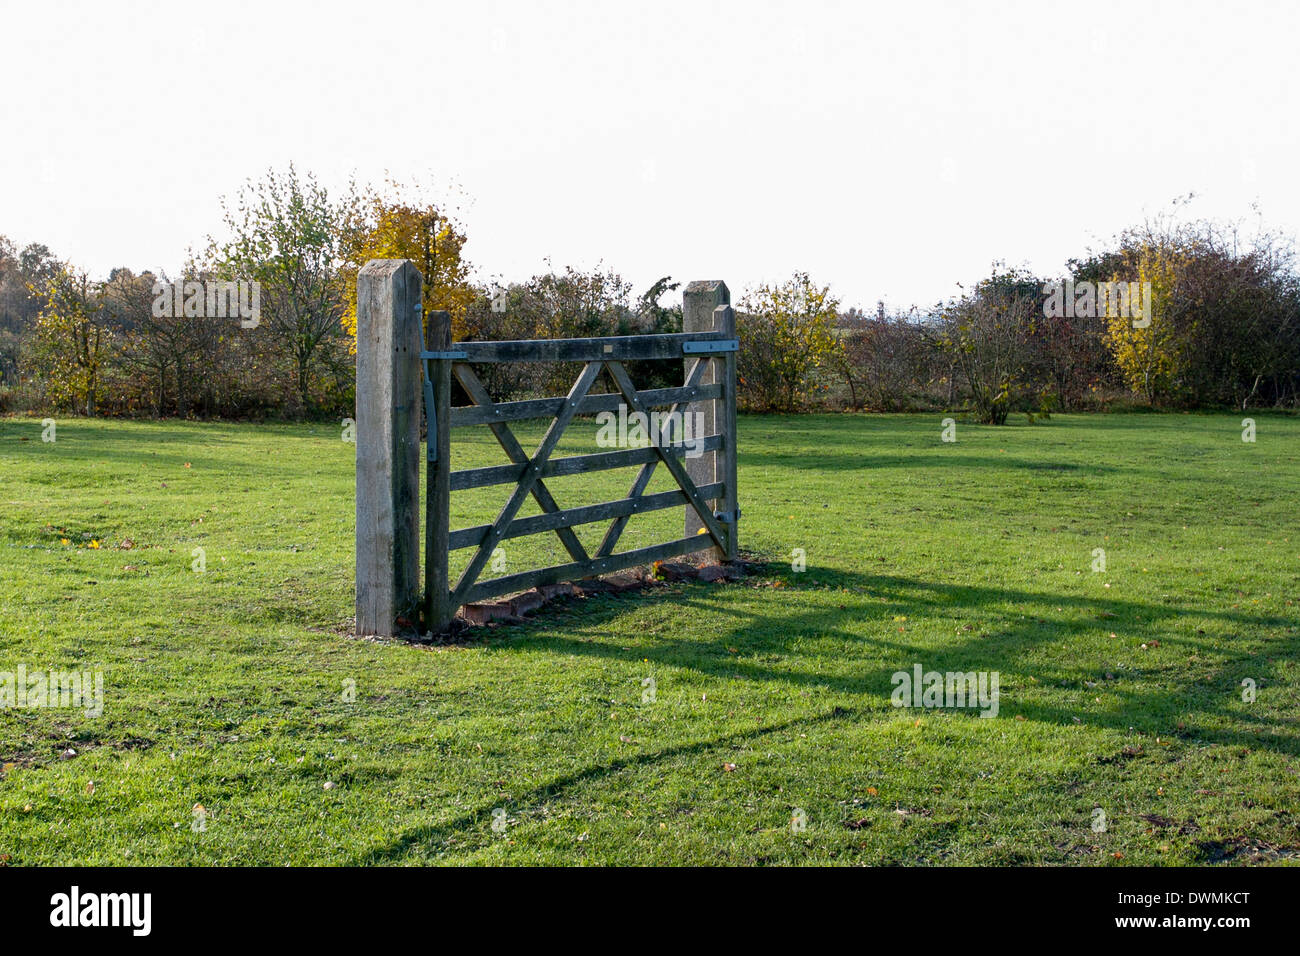 A five-bar gate stands on a green field. There is no fencing attached. - Stock Image